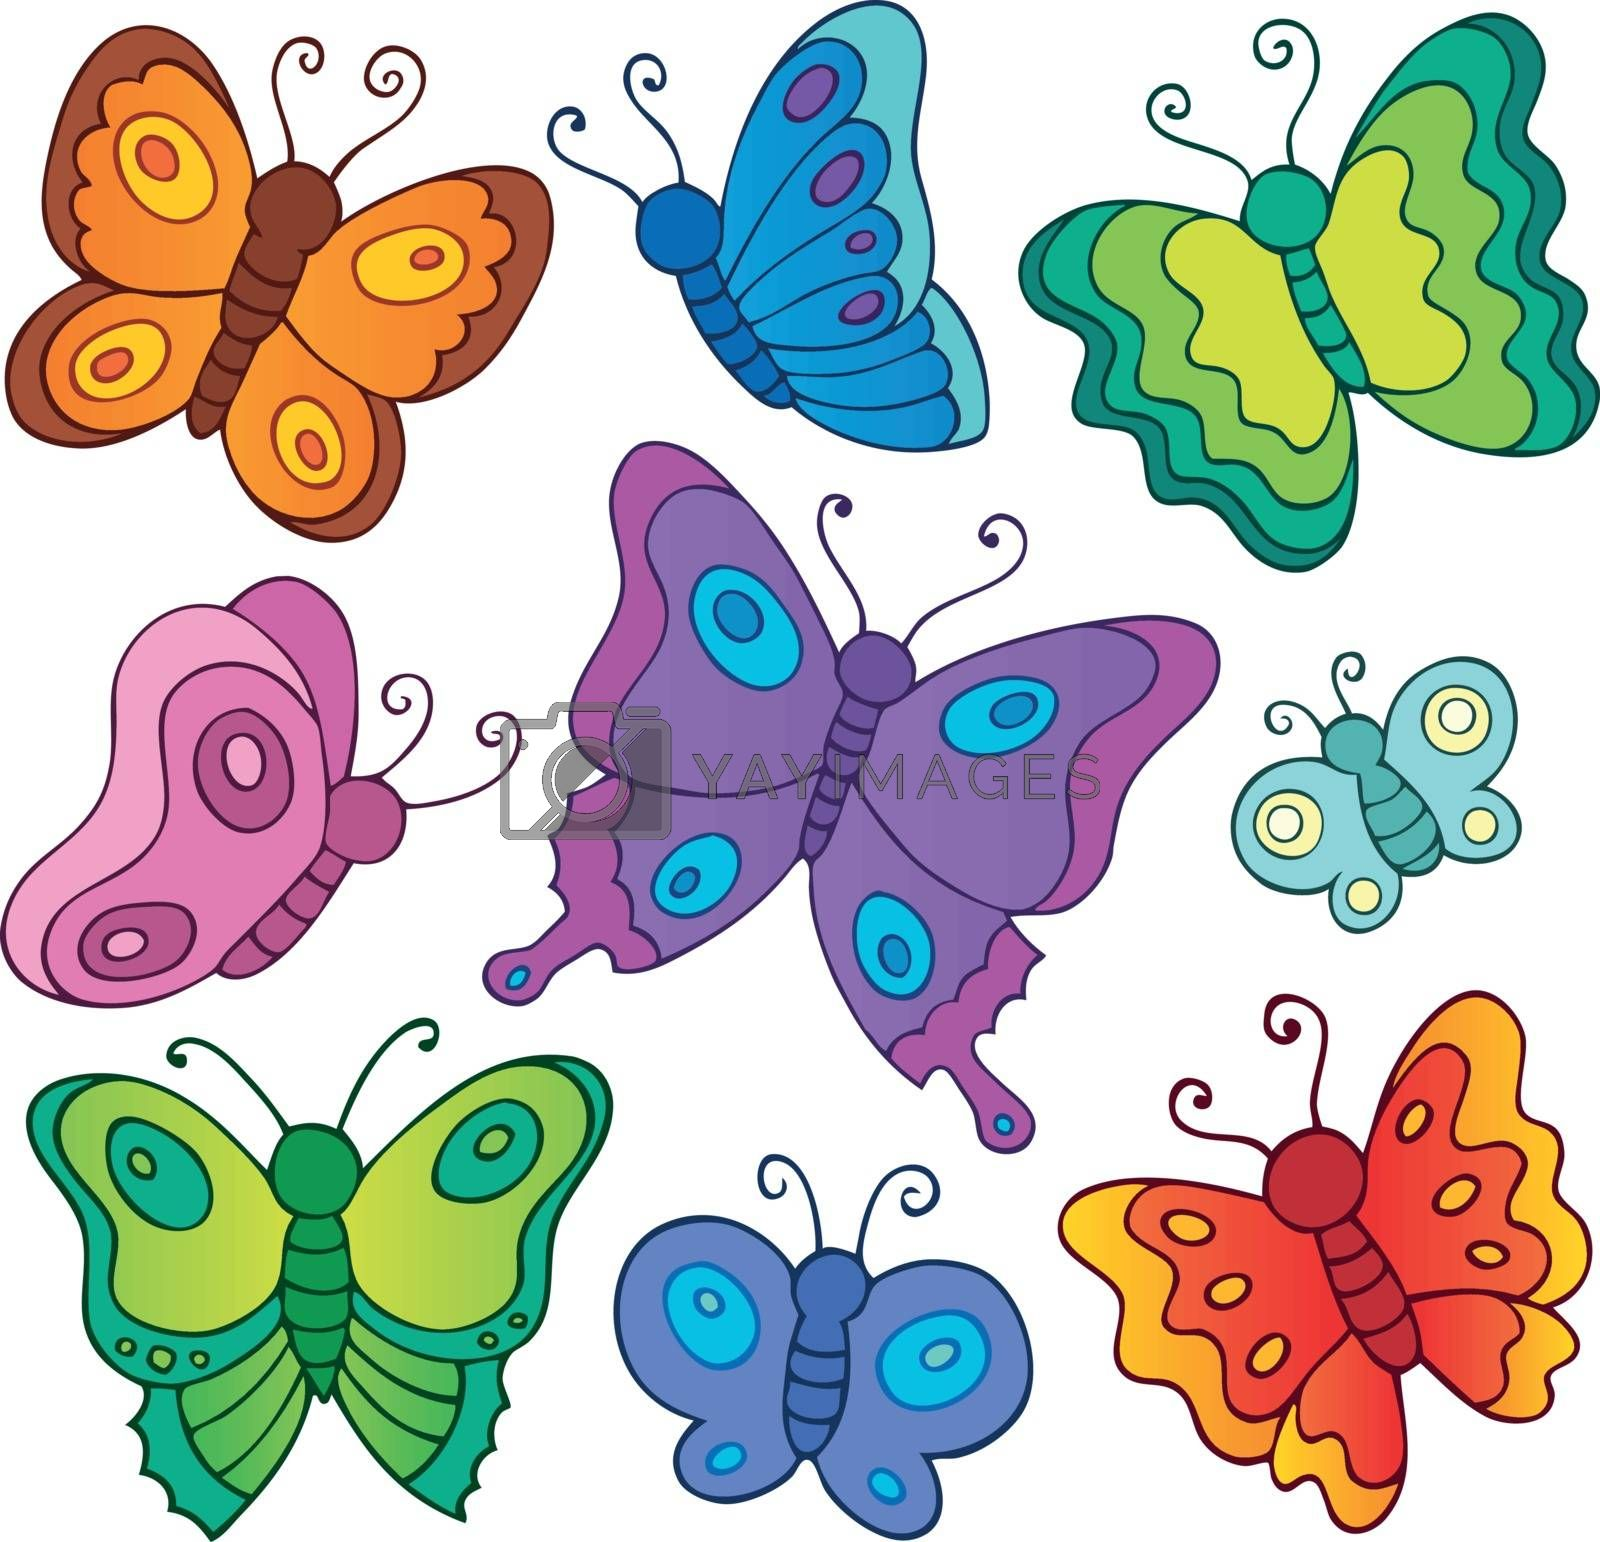 Various butterflies theme set 1 - eps10 vector illustration.